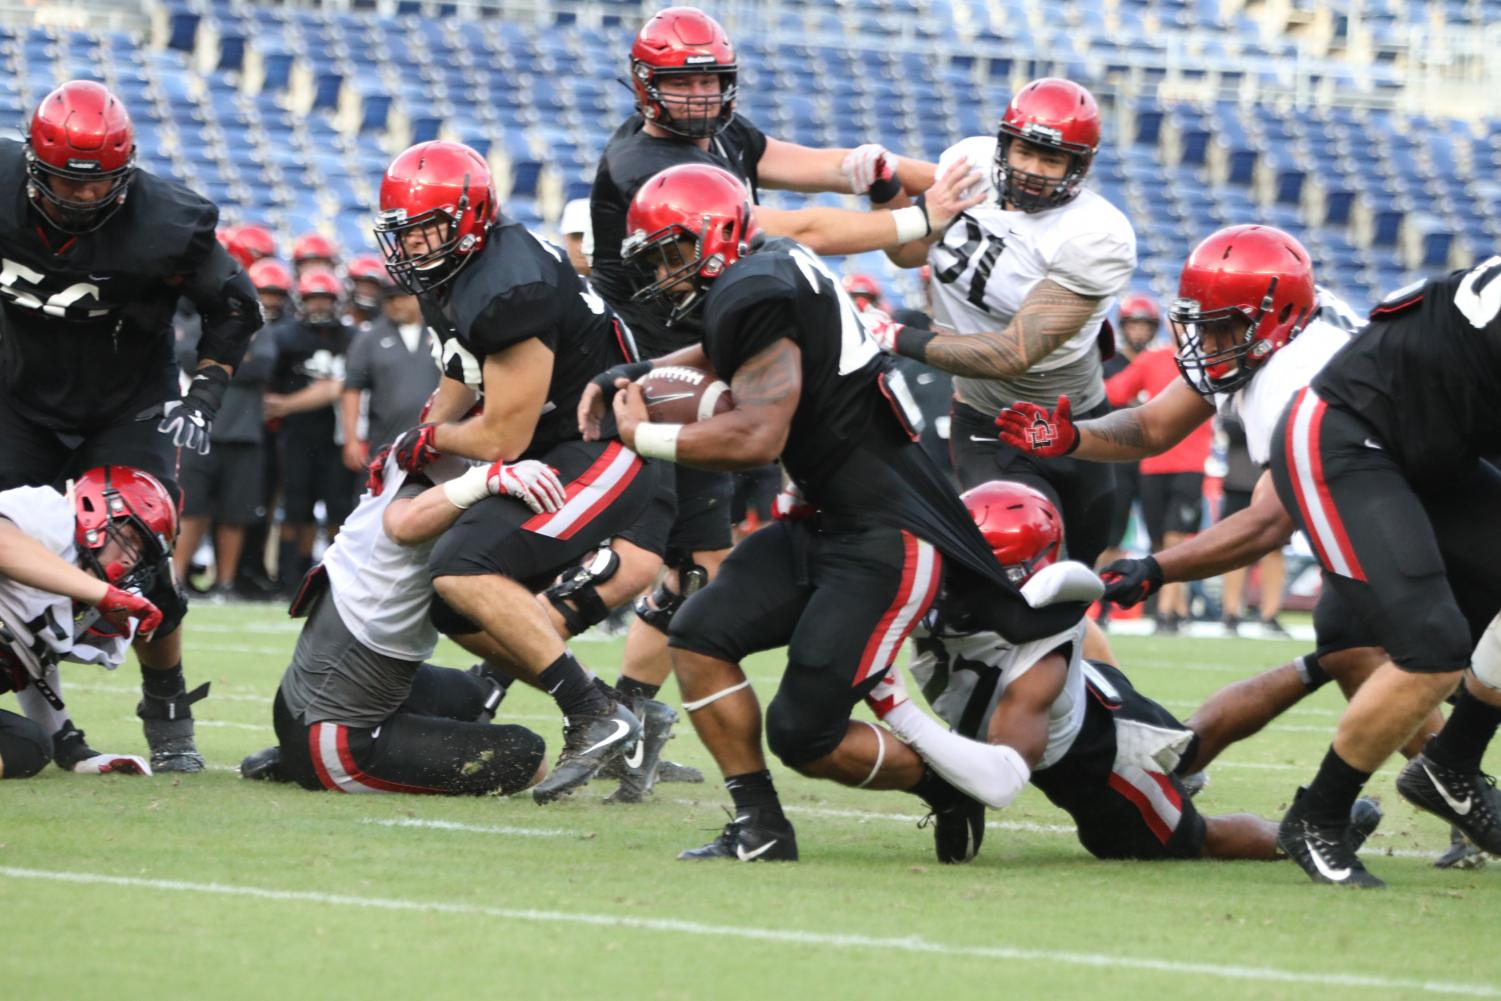 Sophomore running back Kaegun Williams attempts to break a tackle during the Aztecs' scrimmage at the annual Fan Fest on Saturday at SDCCU Stadium.